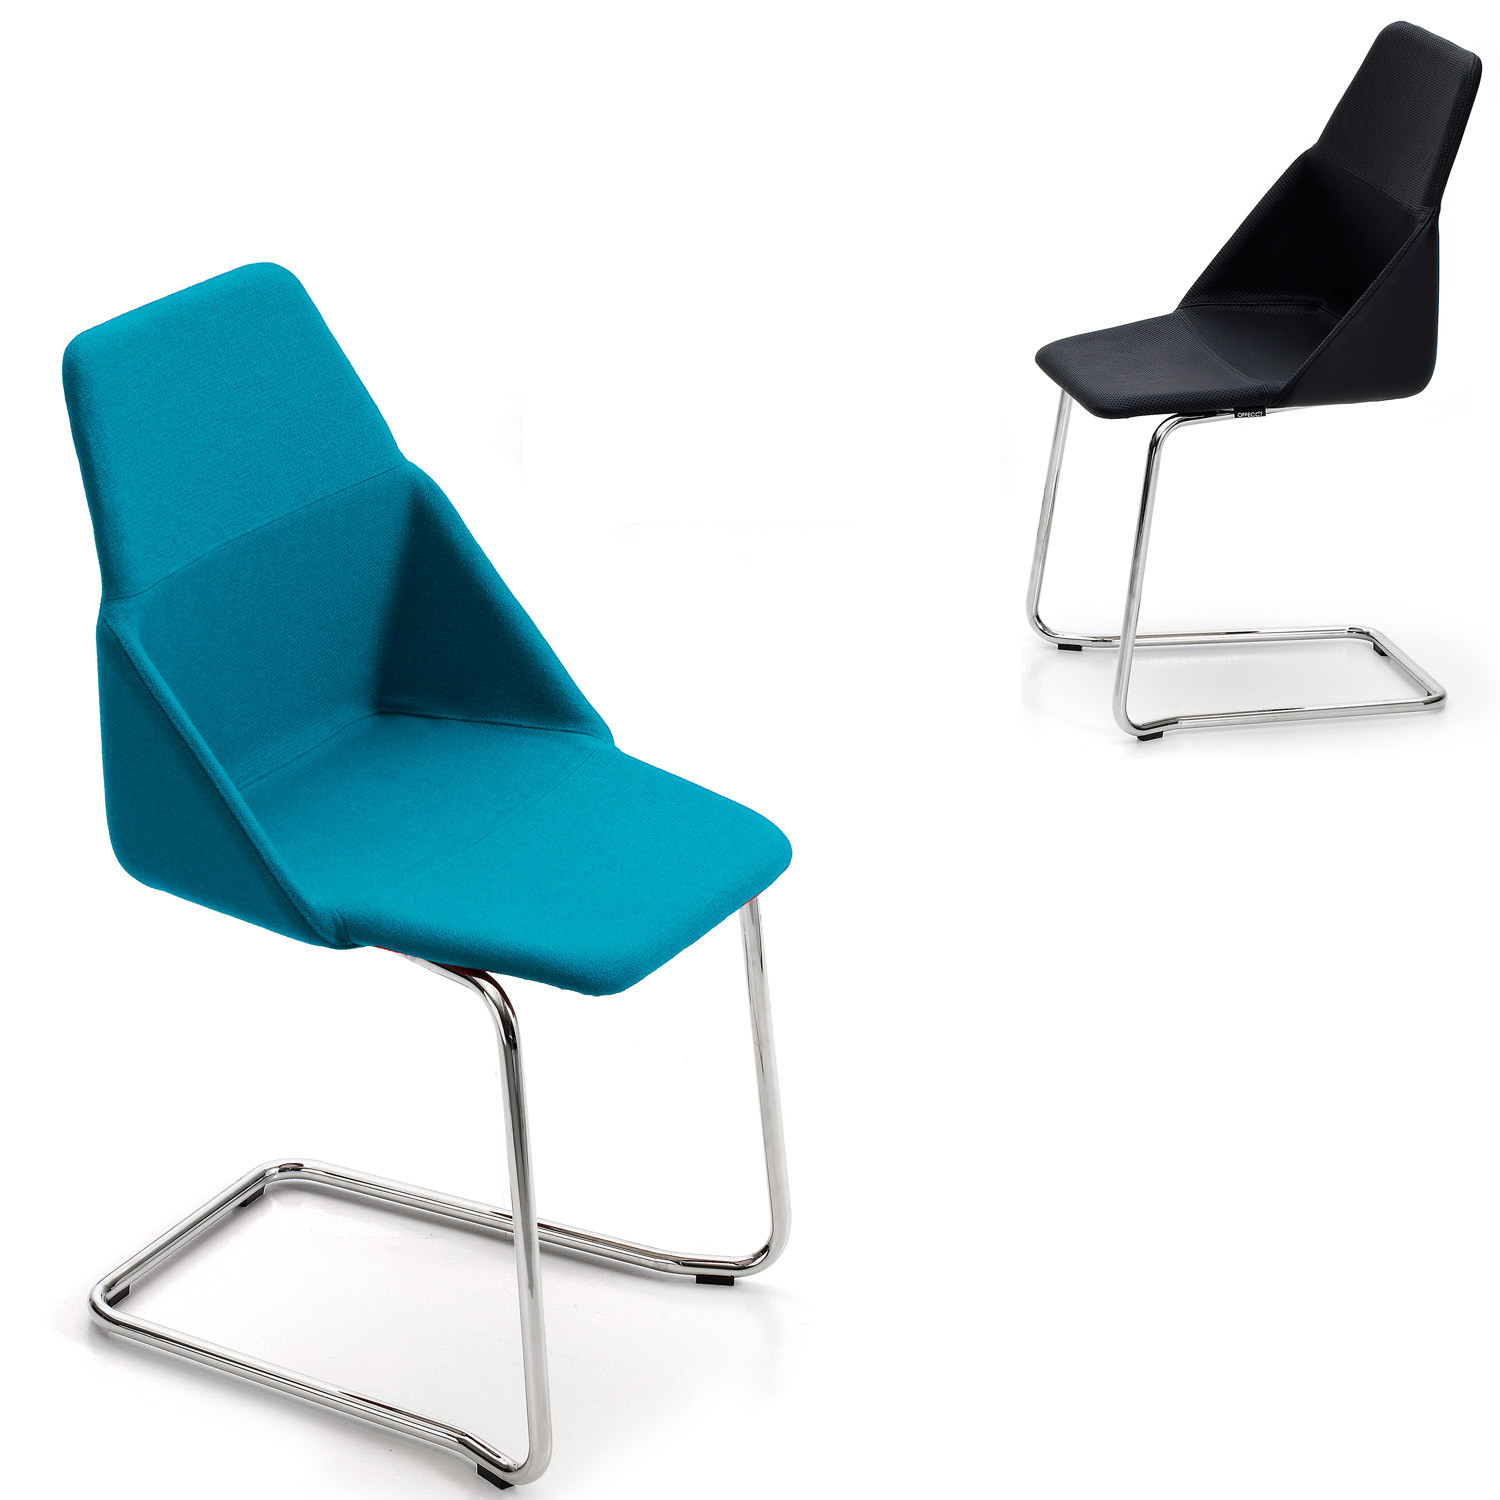 Canti Chairs